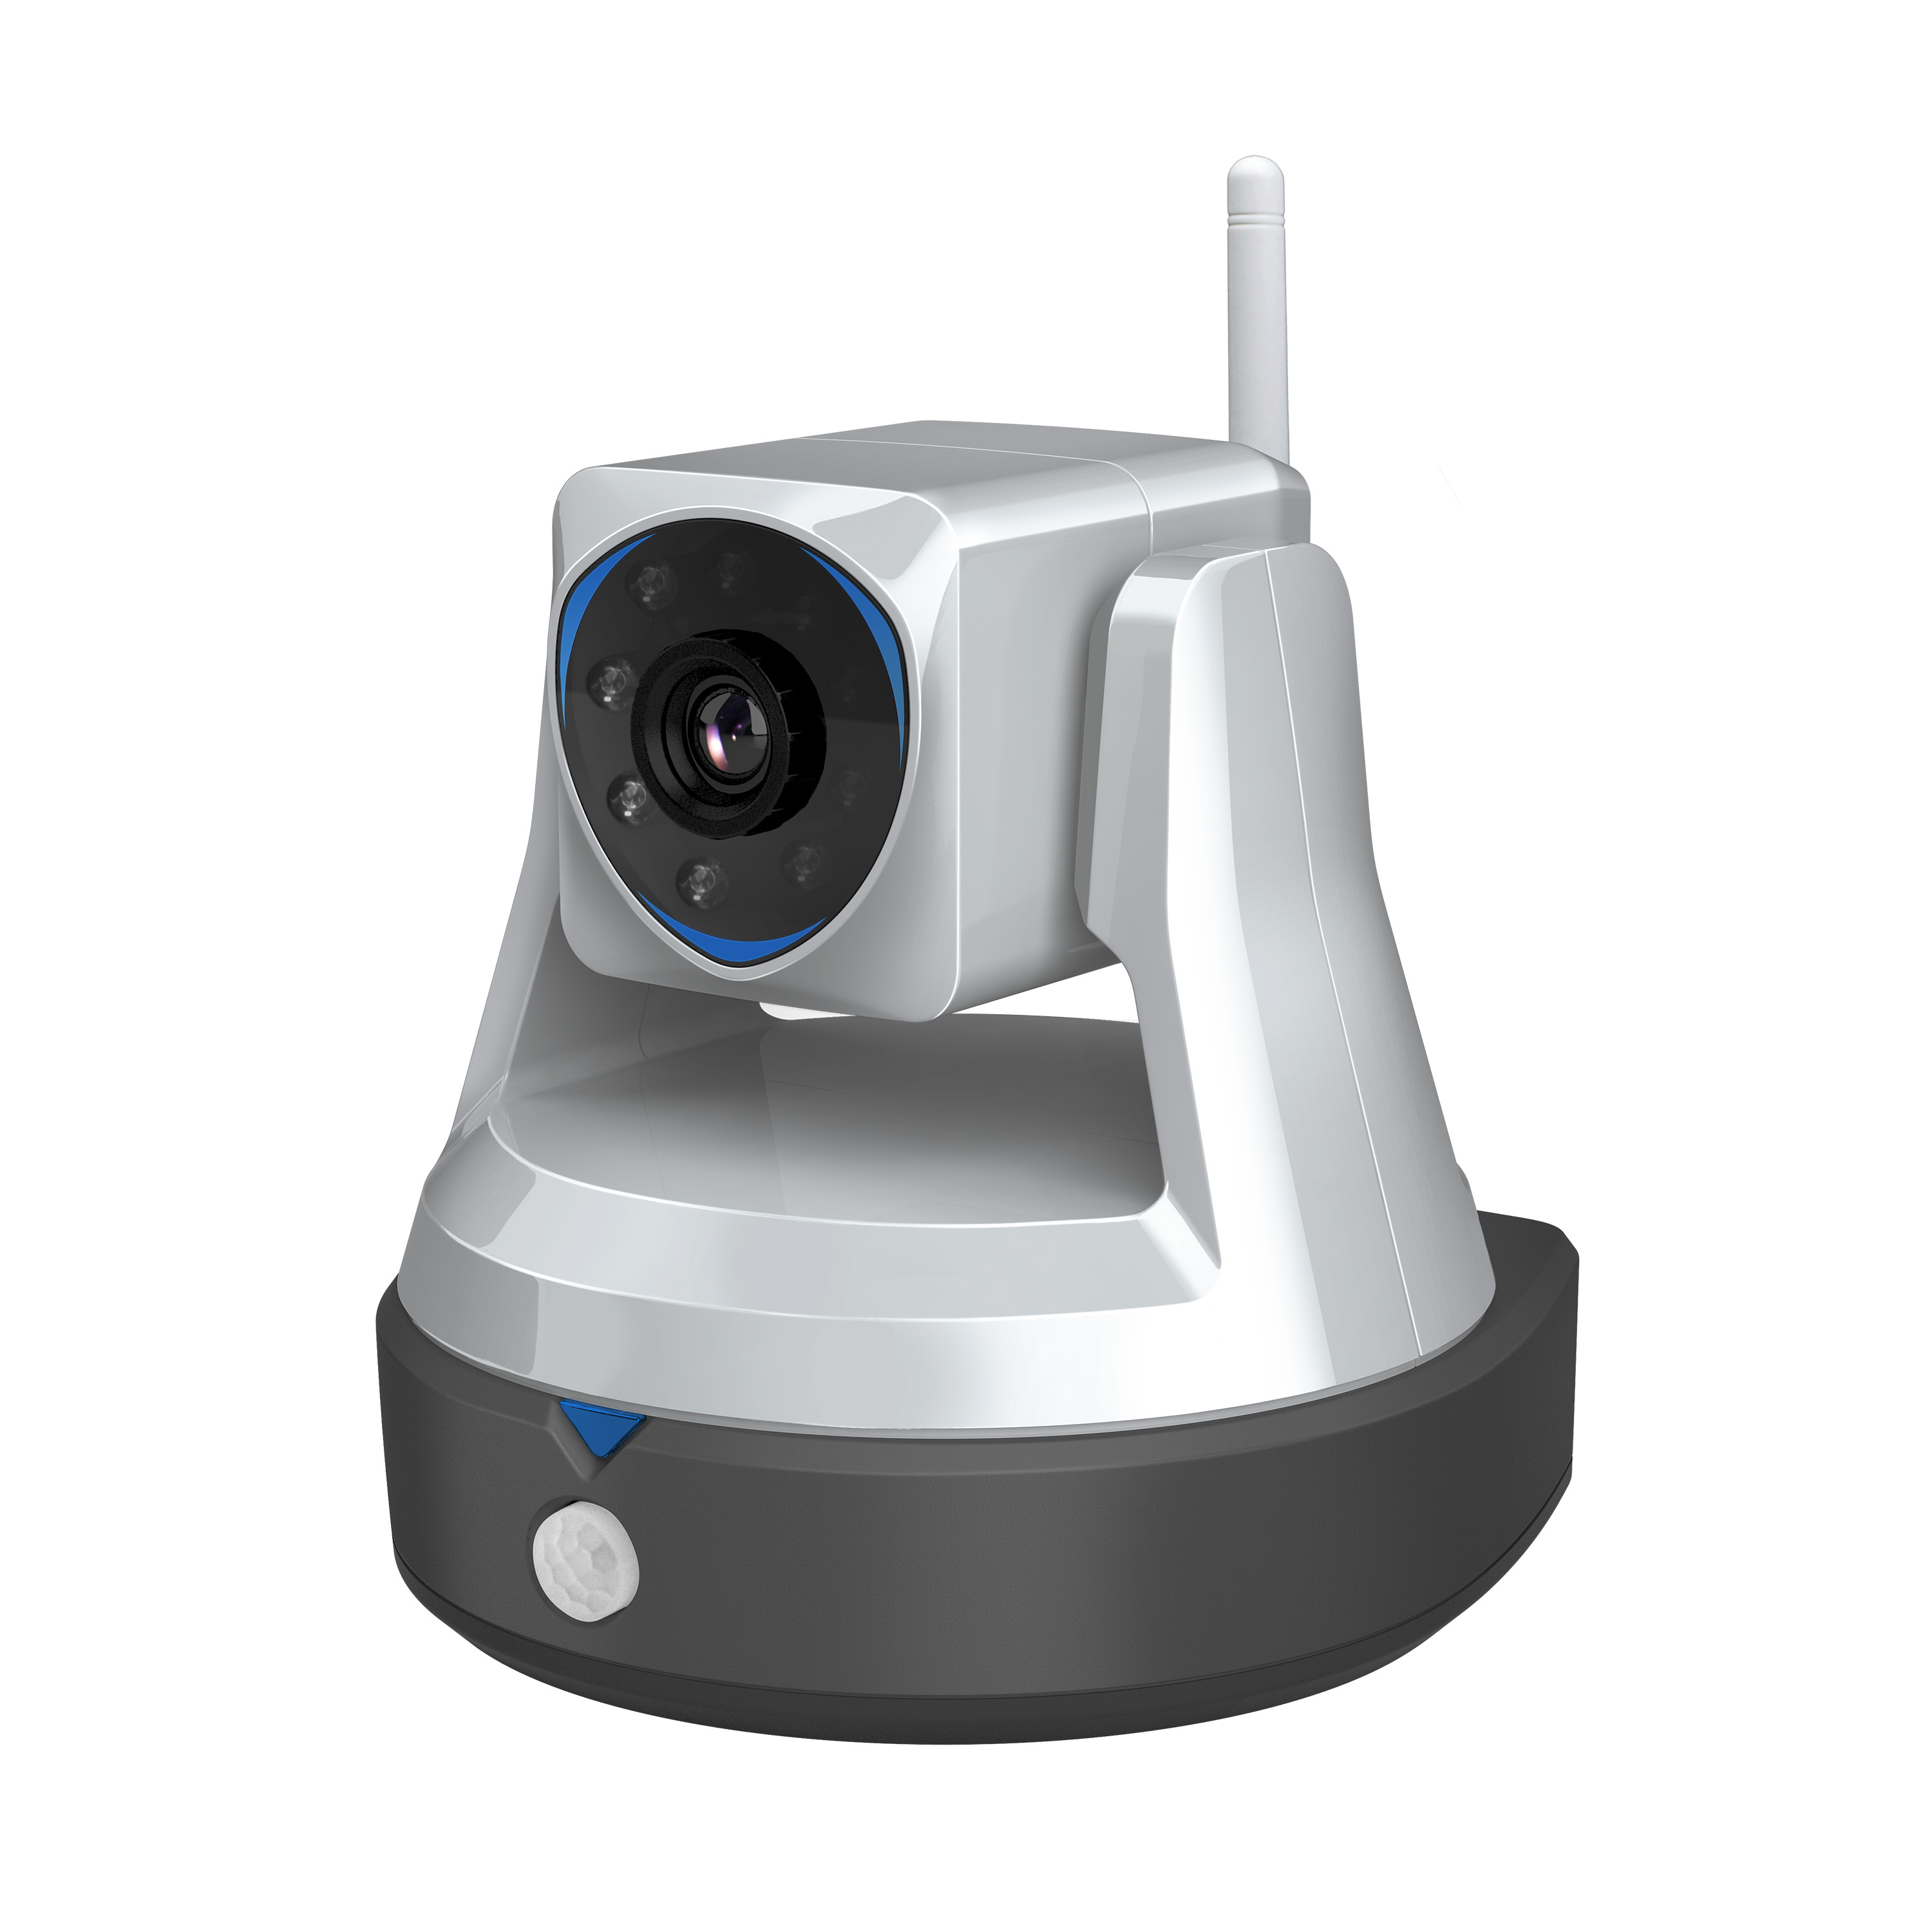 ADS446 SwannCloud HD Pan and Tilt WiFi Security Camera with Smart